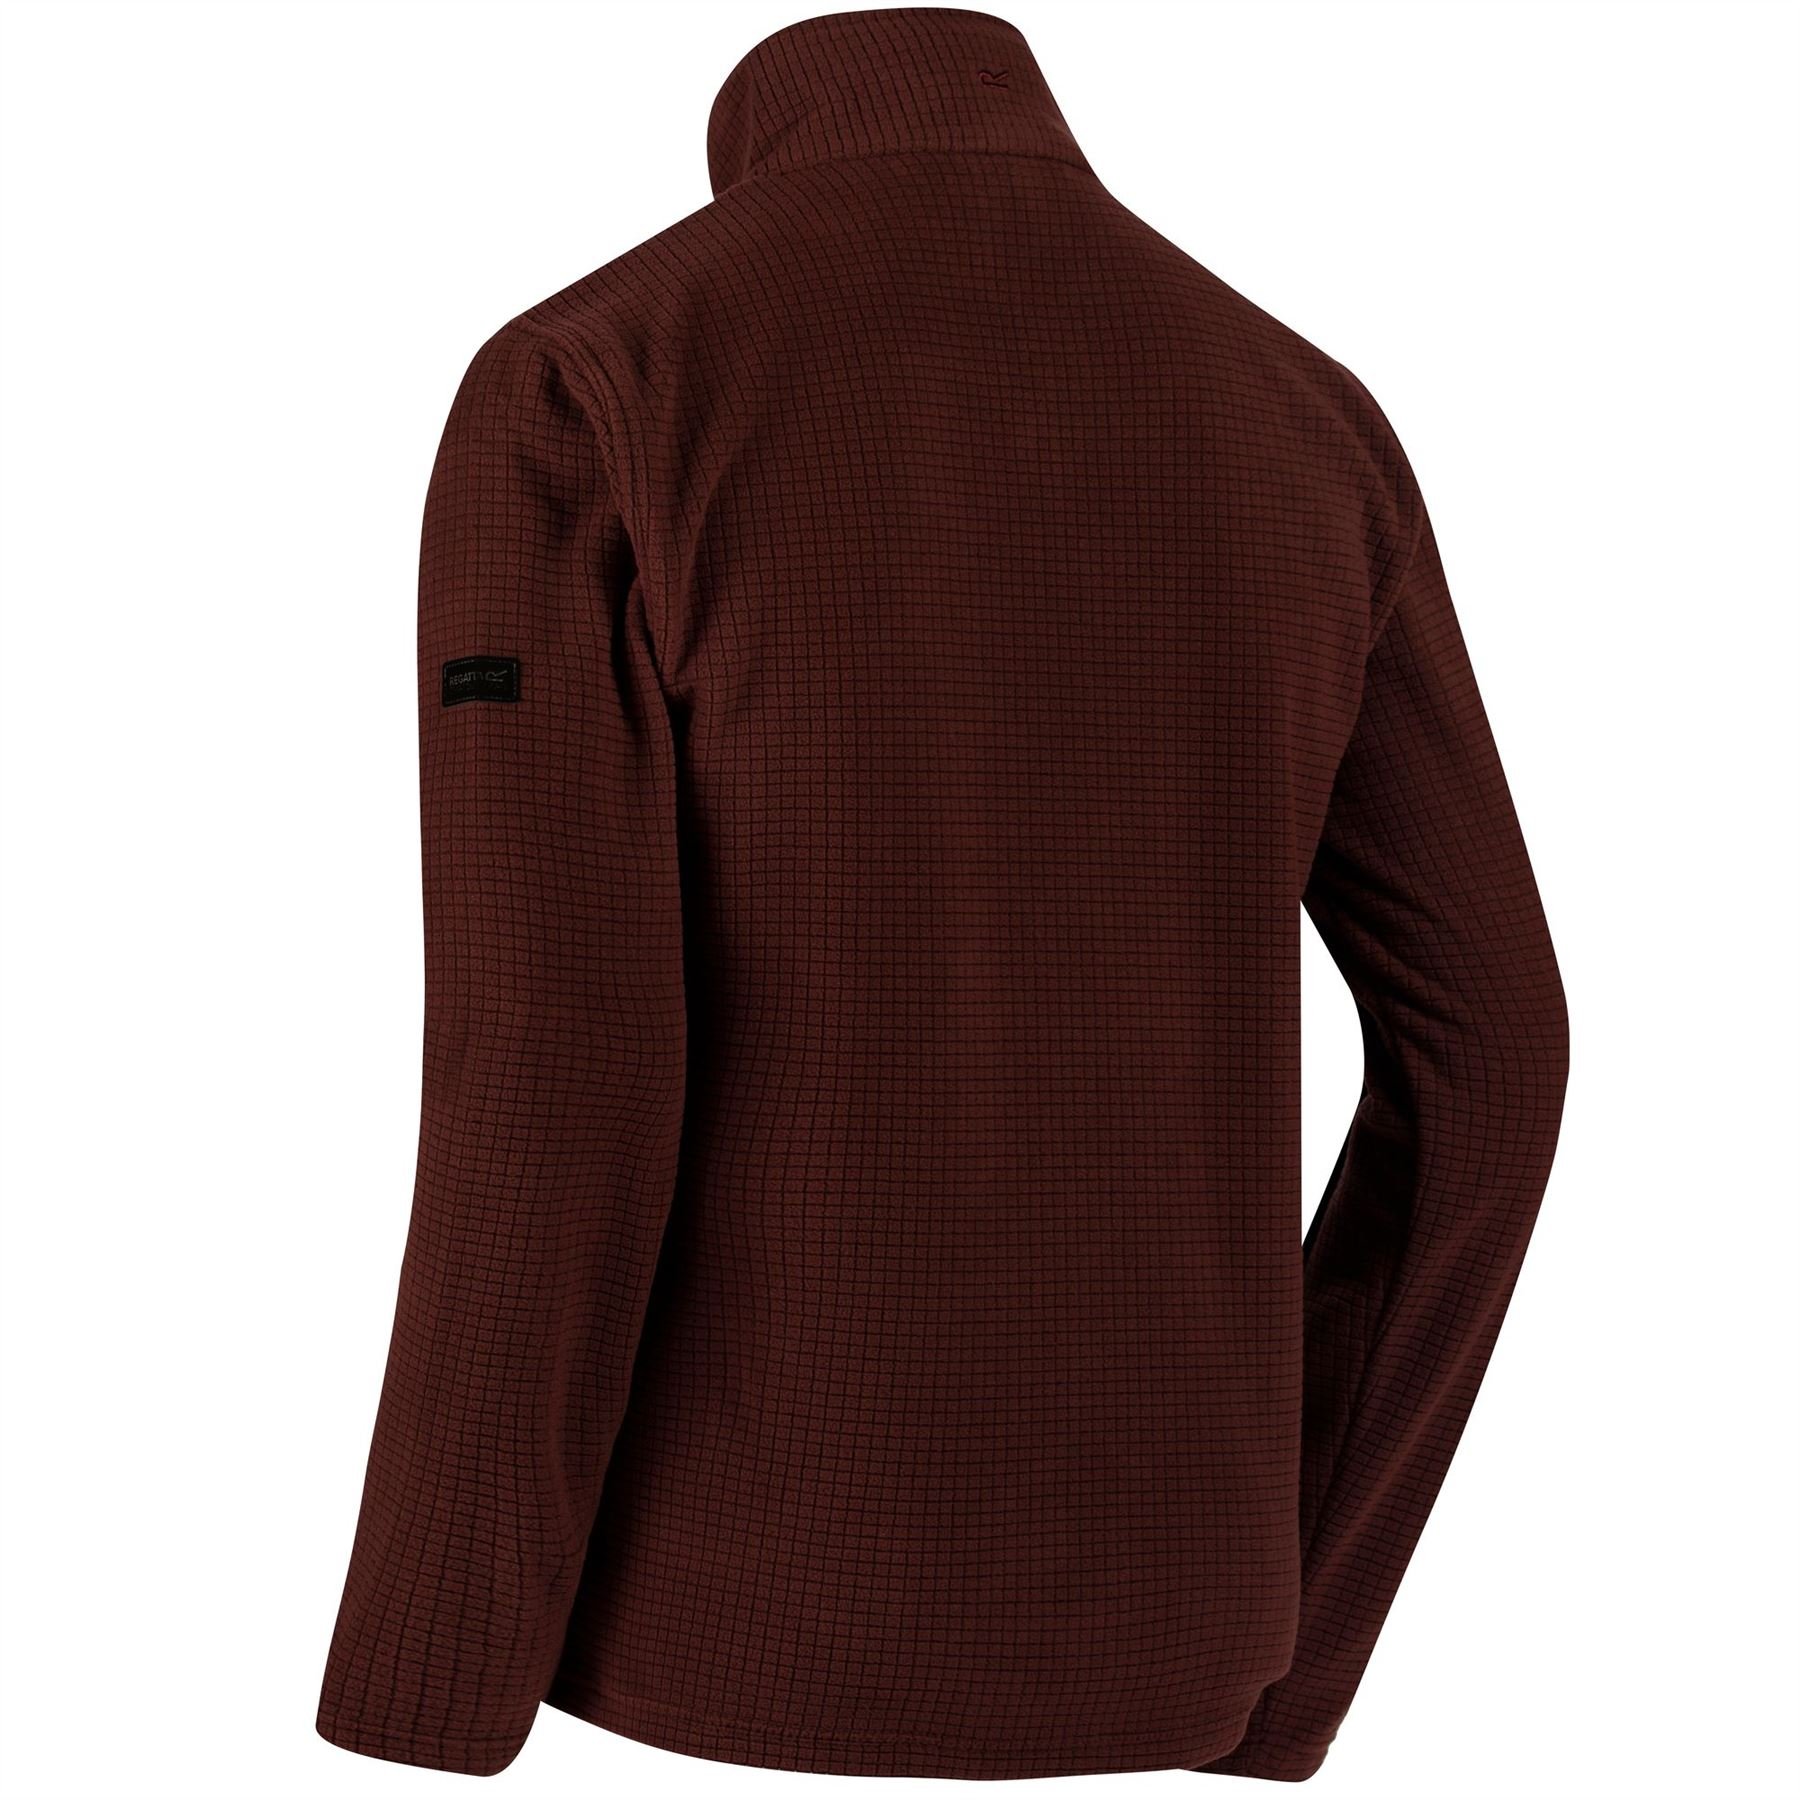 Regatta-Elgon-para-hombre-Half-Zip-Fleece-Pullover-Jumper-Top-RMA236 miniatura 3